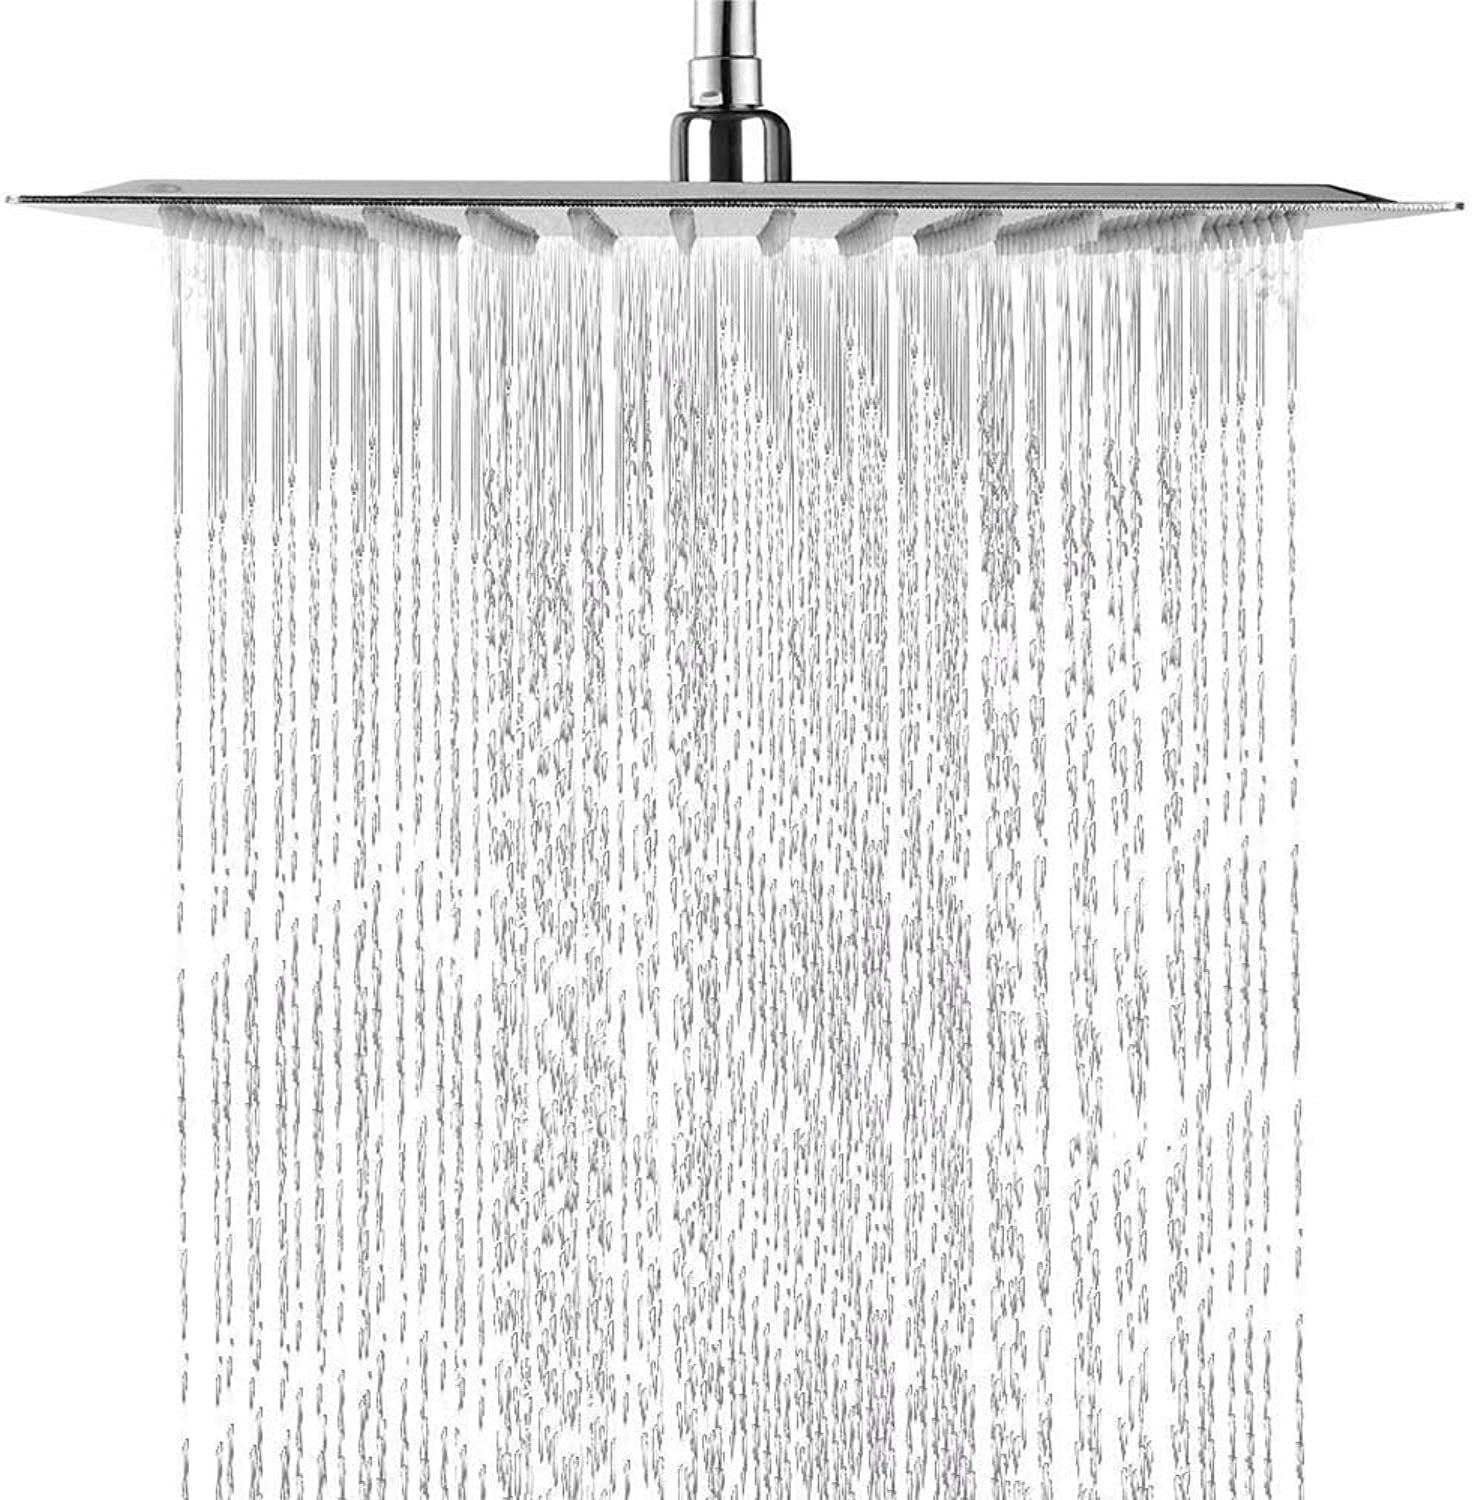 8.12 Inches Overhead Rain Shower Square Shower Head Rain Shower Head with Rain Shower Head Shower Head Shower Shower Luxury Polished Stainless Steel with Anti-Lime Nozzles Ultra Mirror Effect